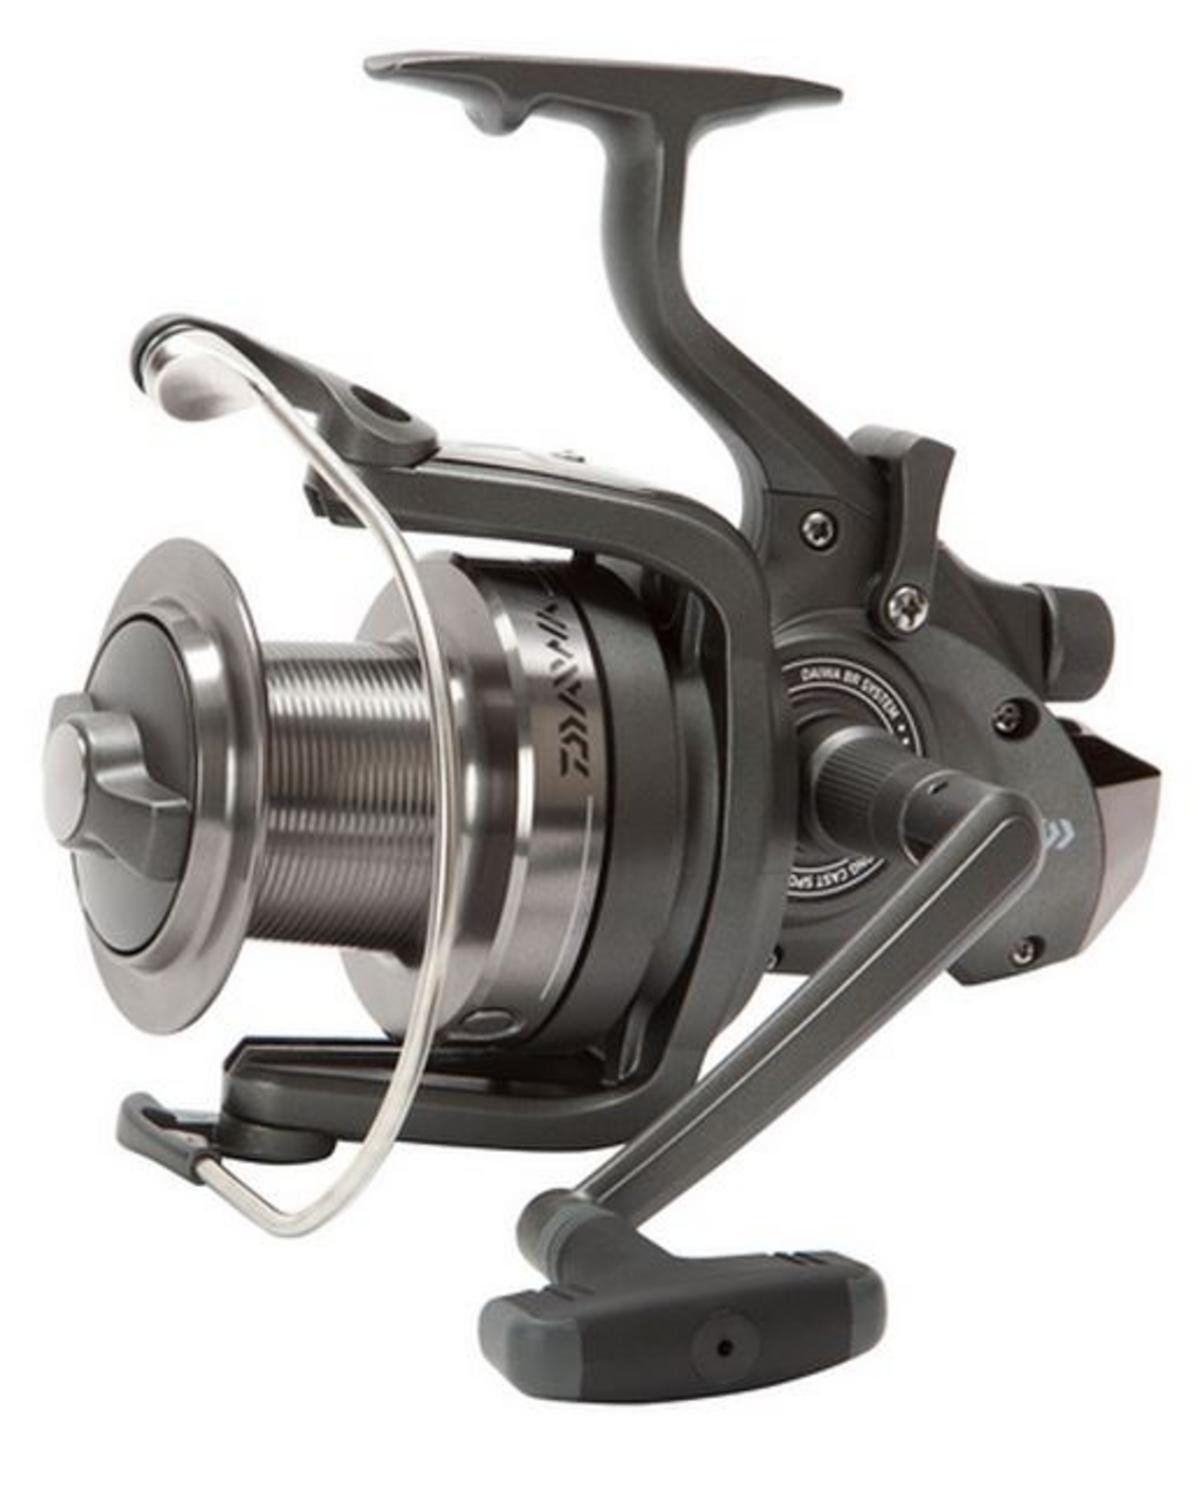 Daiwa crosscast br 5000 lda fishing reel ccbr5000lda for Daiwa fishing reels